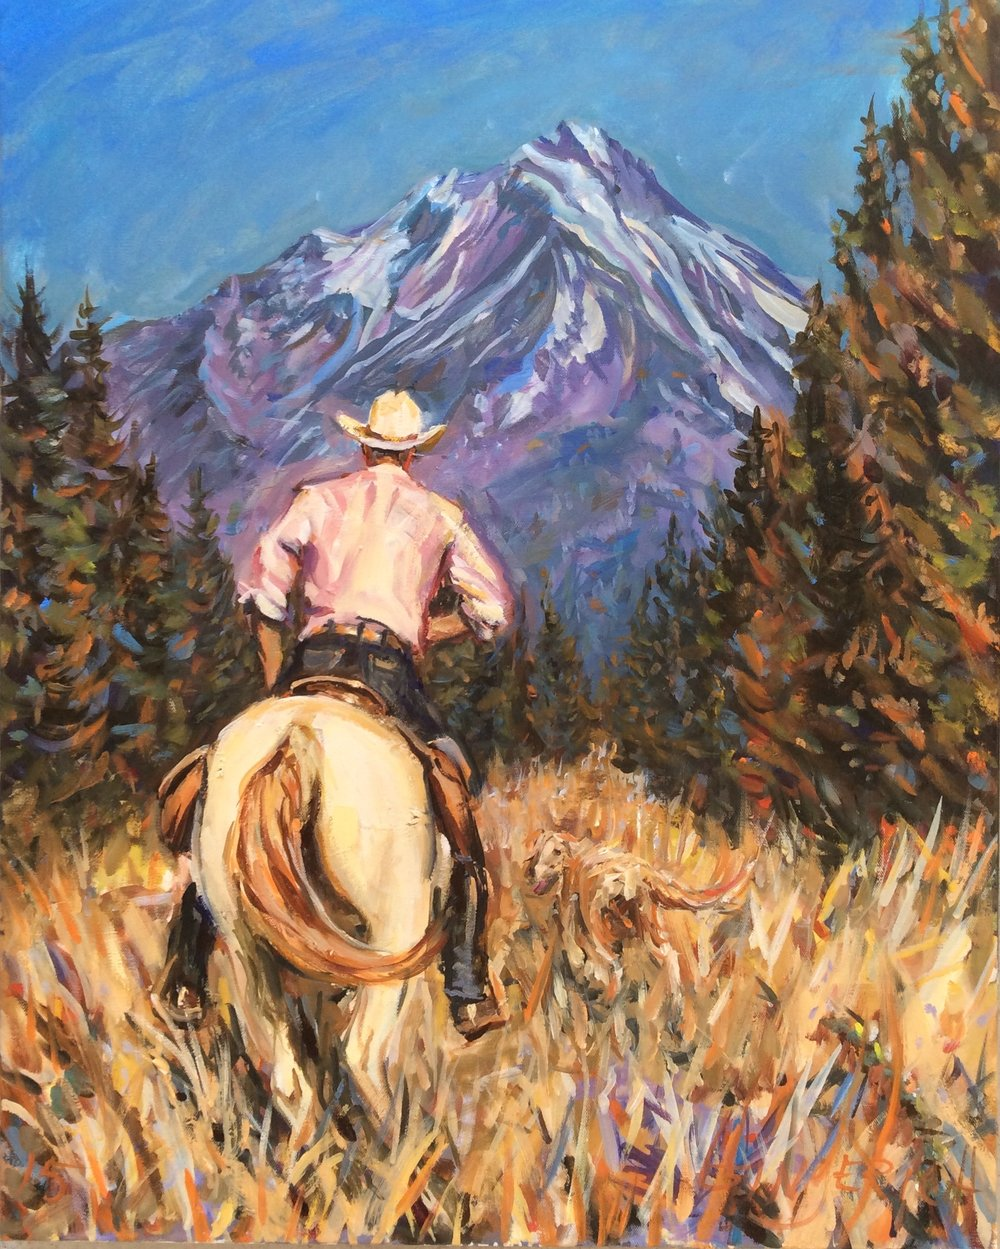 The Trail to Shasta  24 x 30 inches, oil on canvas